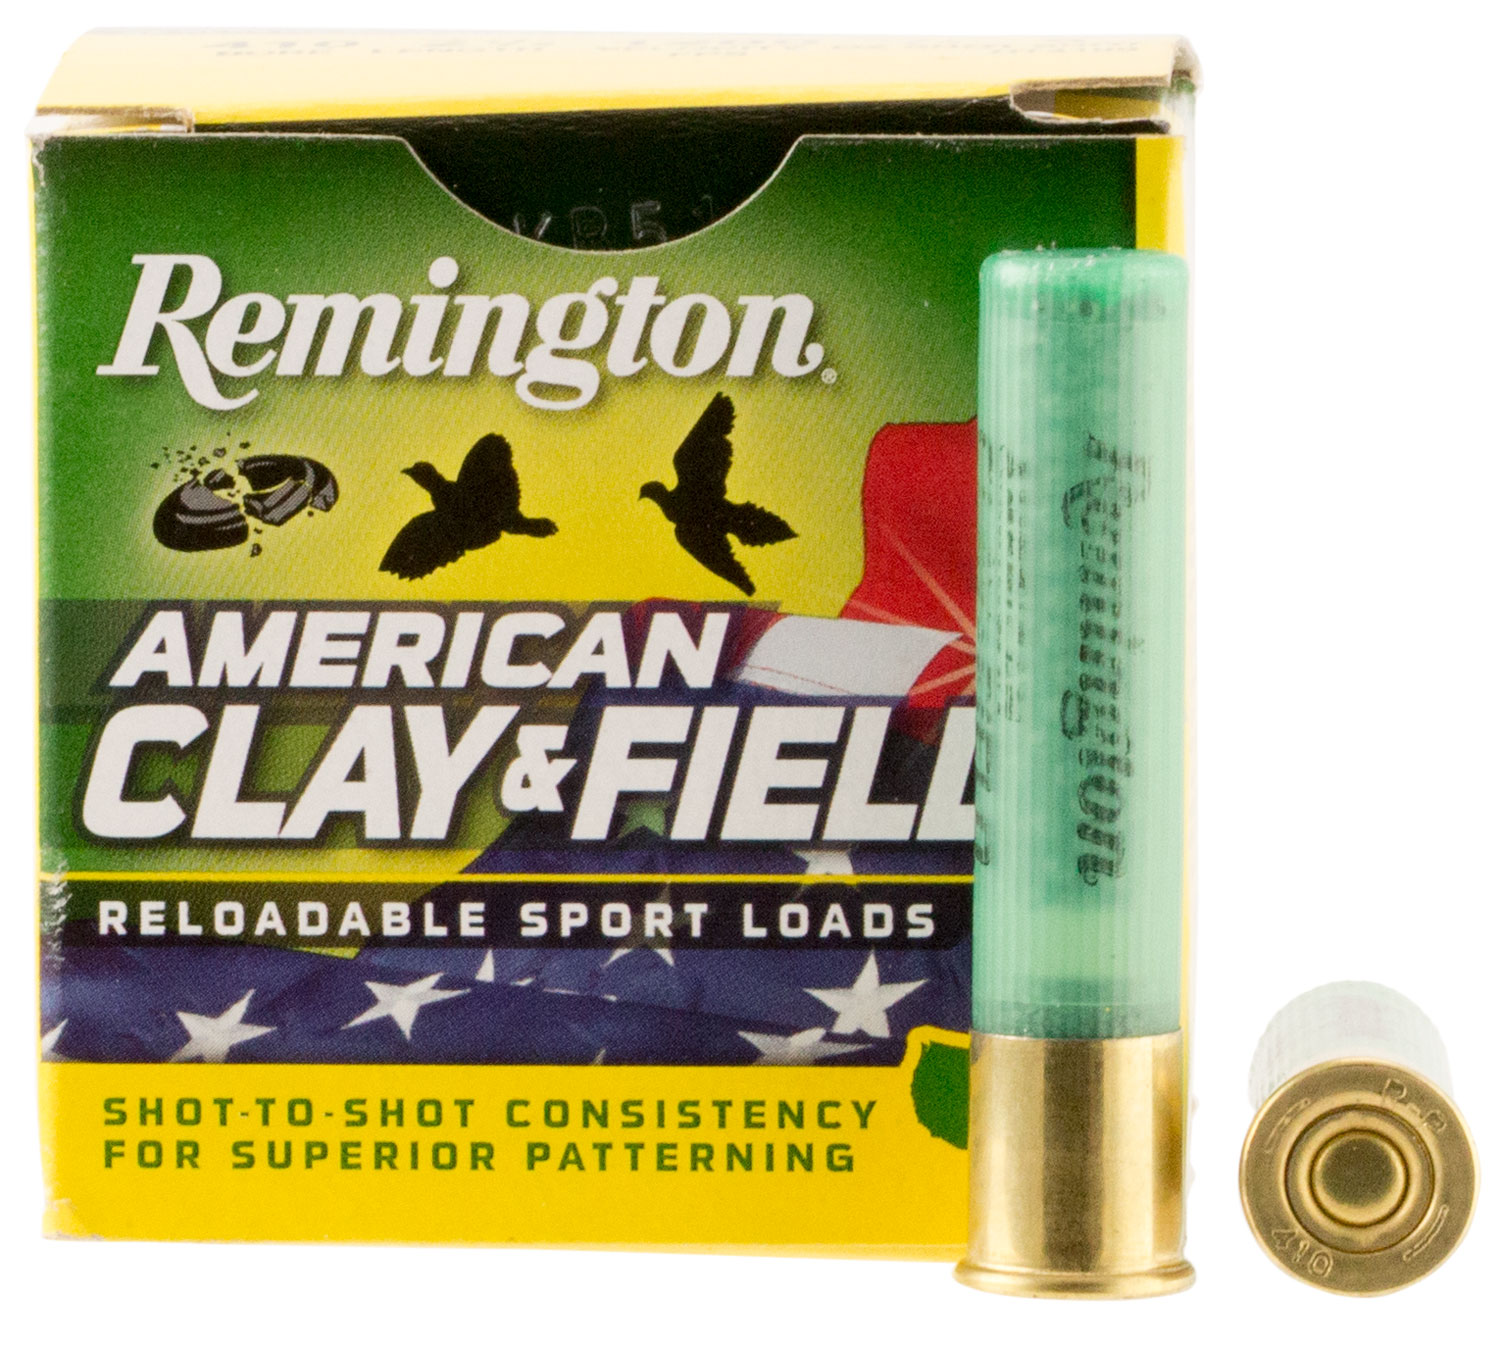 Remington Ammunition HT4109 American Clay and Field Sport Loads 410 Gauge 2.5